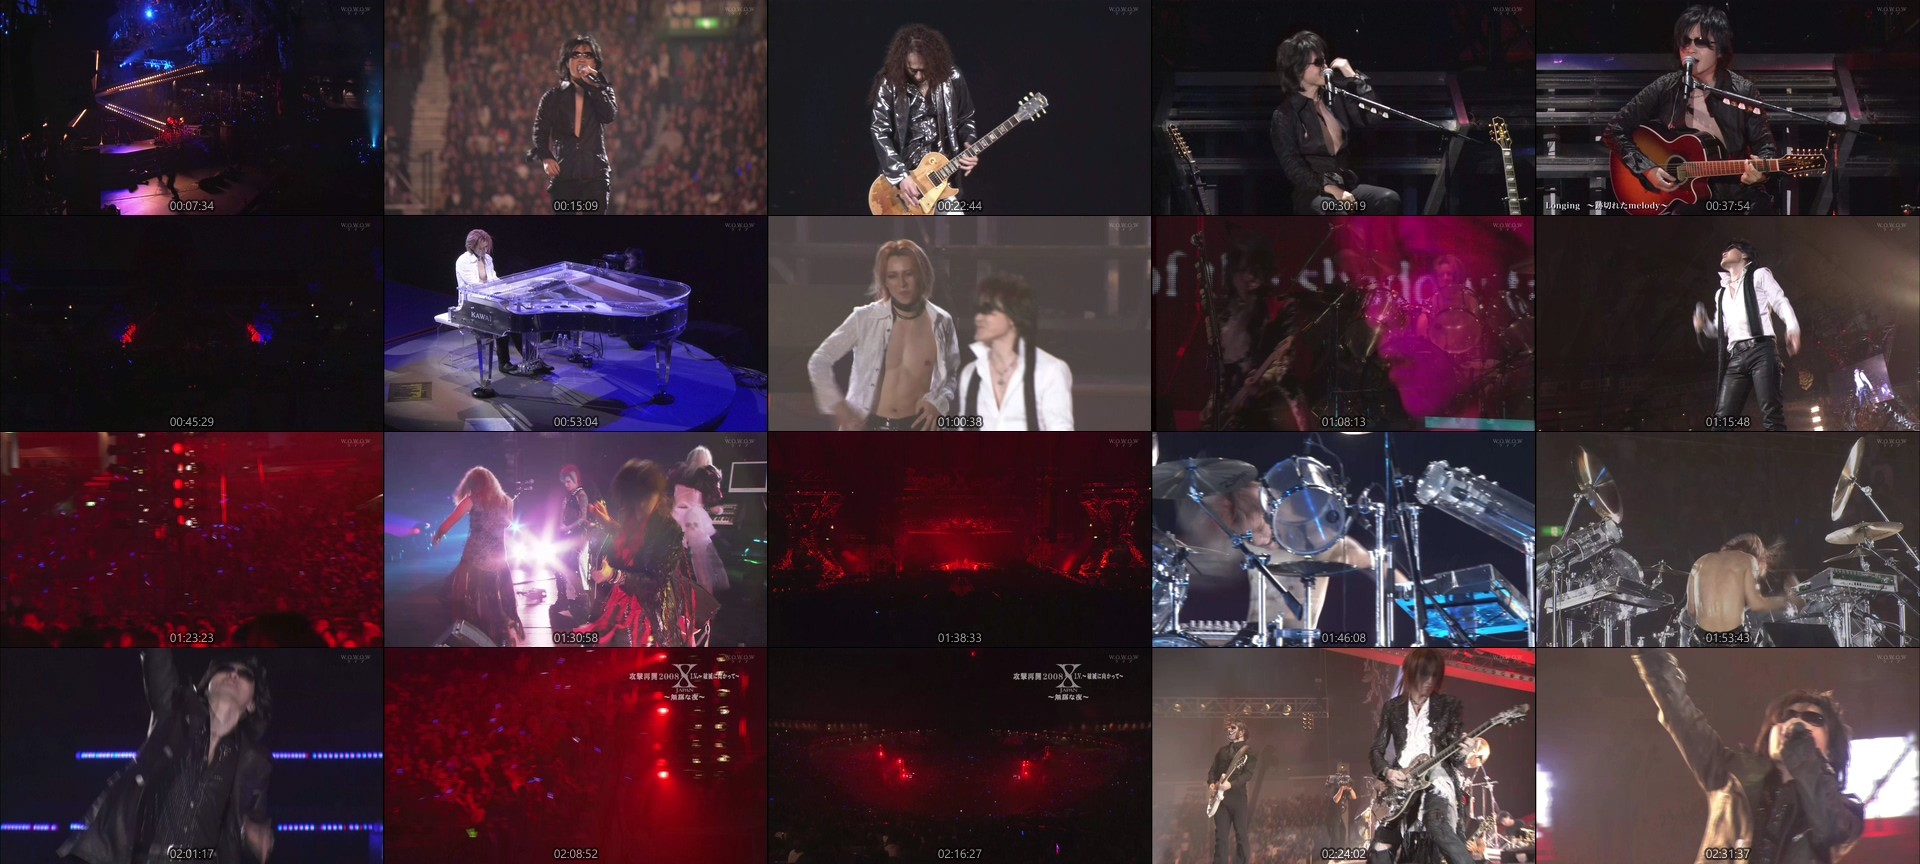 X JAPAN – X JAPAN to resume its attack in 2008 I.V. ~towards destruction~ / ~Night of Madness~ (WOWOW Live 2020.09.10)